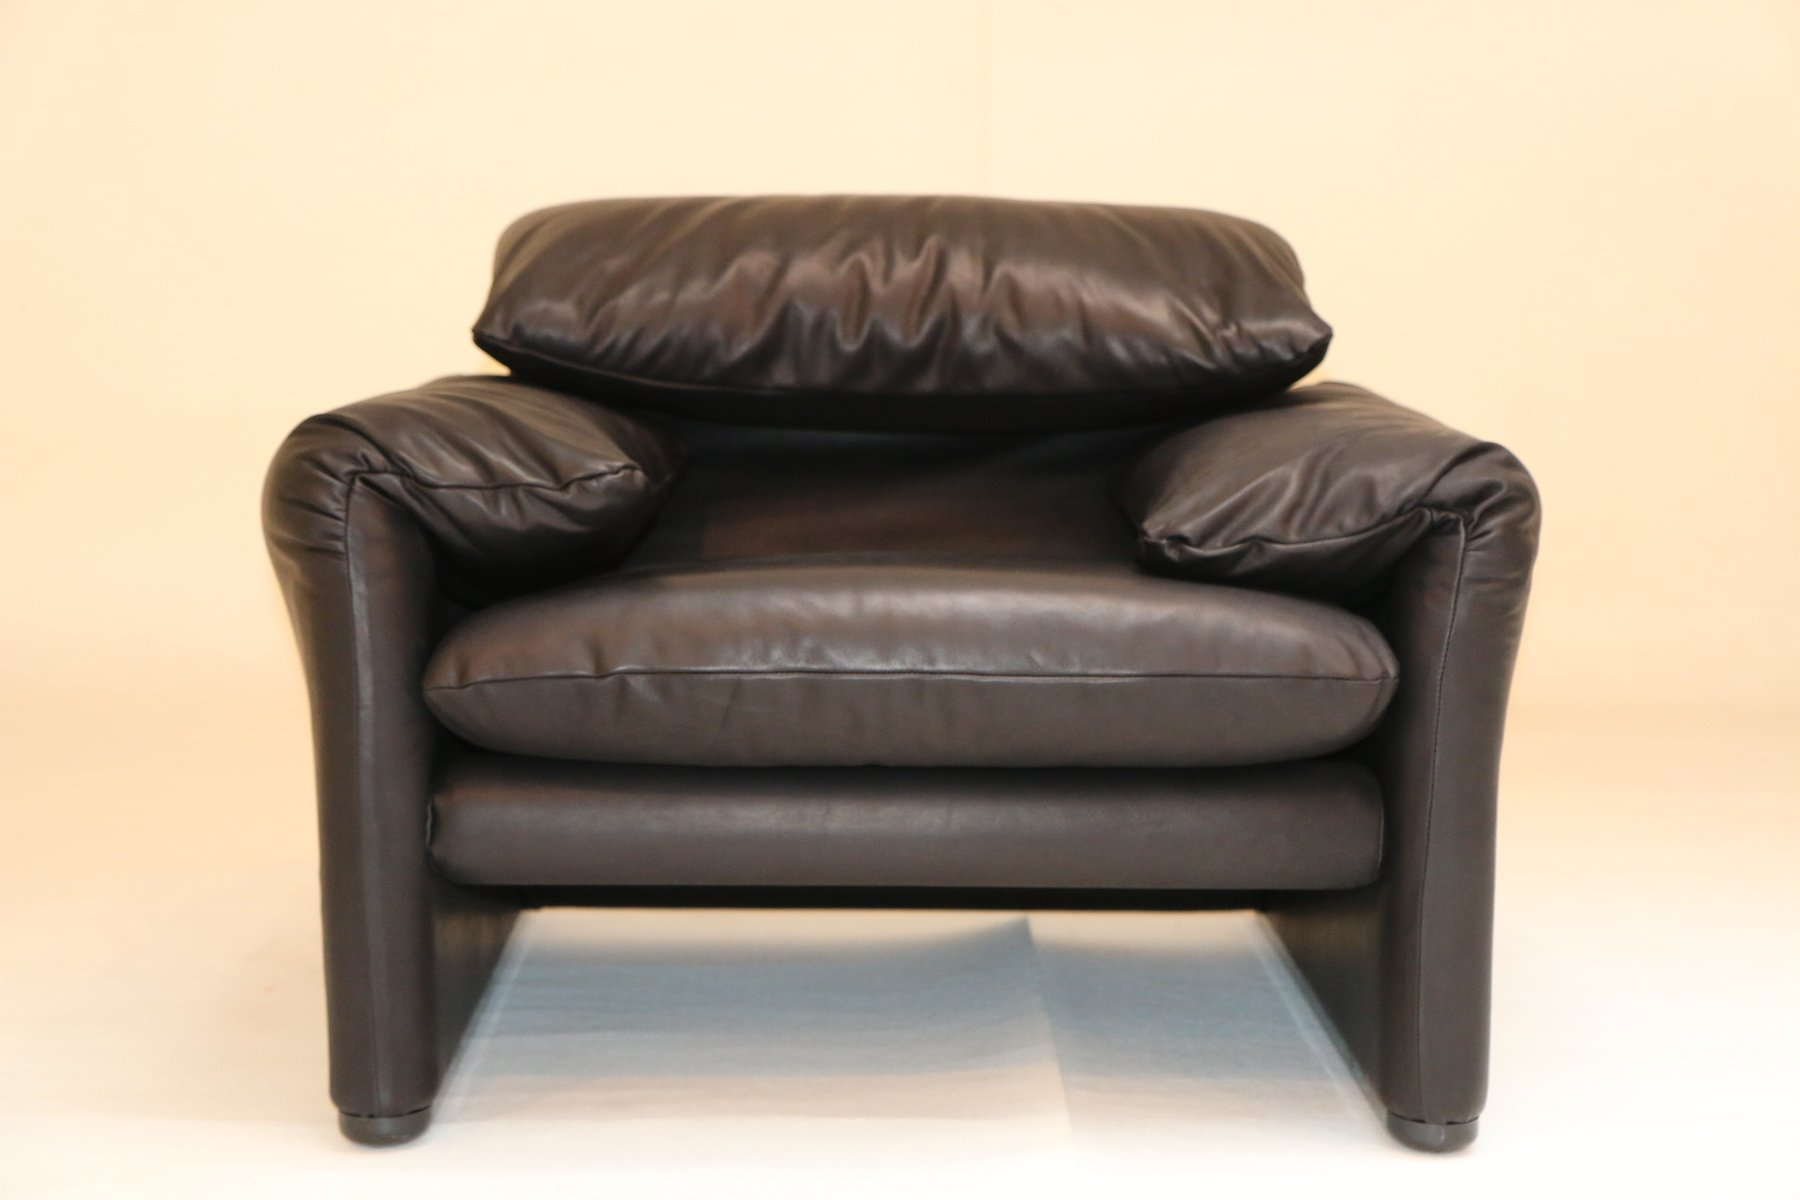 vintage black leather maralunga easy chairs by vico magistretti for